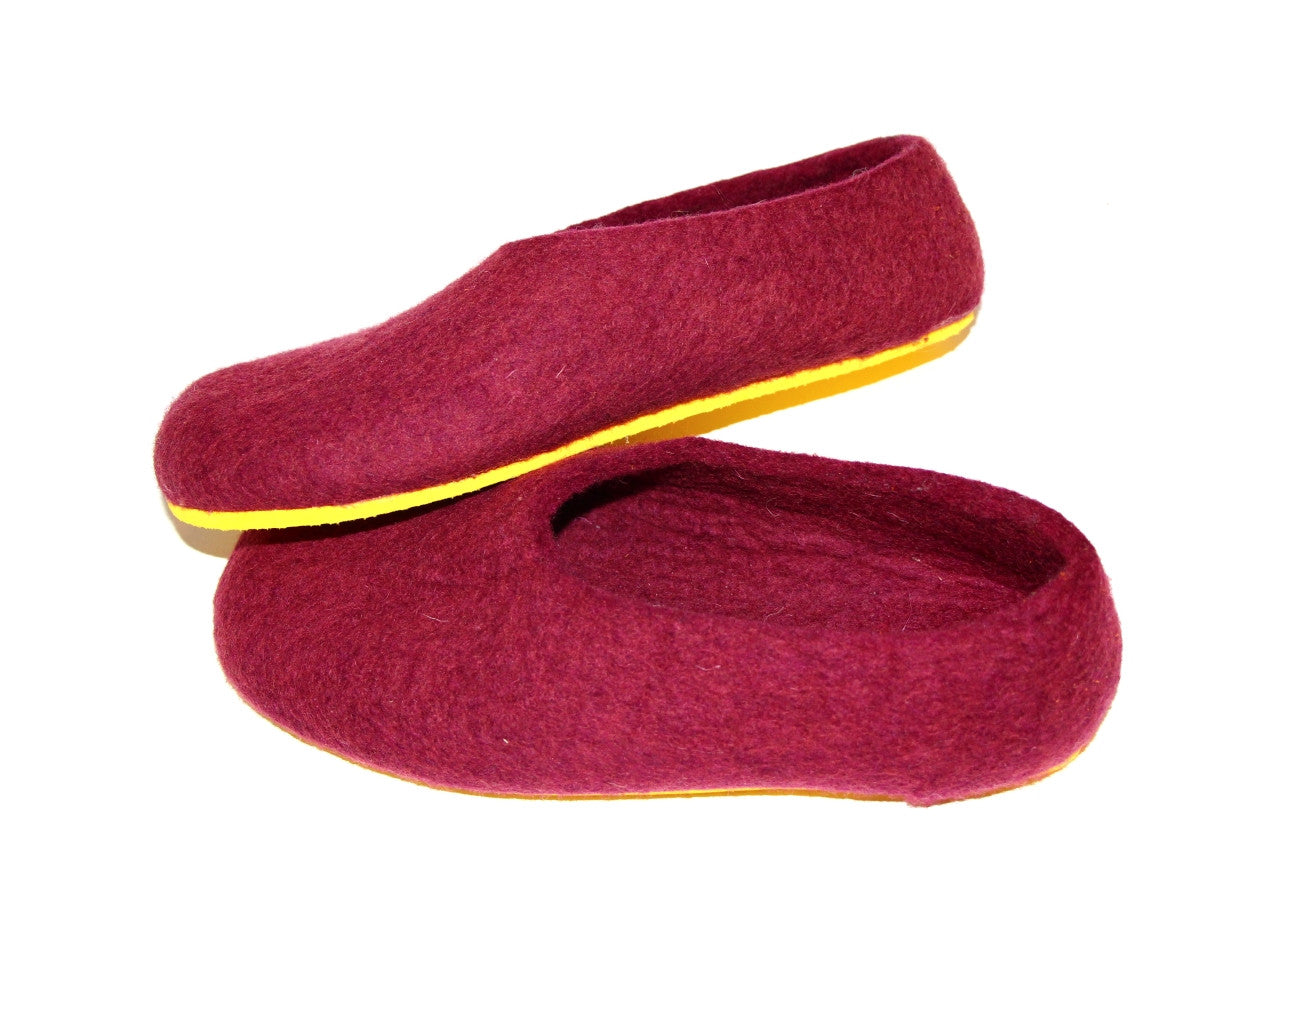 Womens Wool Felted Slippers Marsala Red Wine Contrast Sole - Wool Walker  - 1